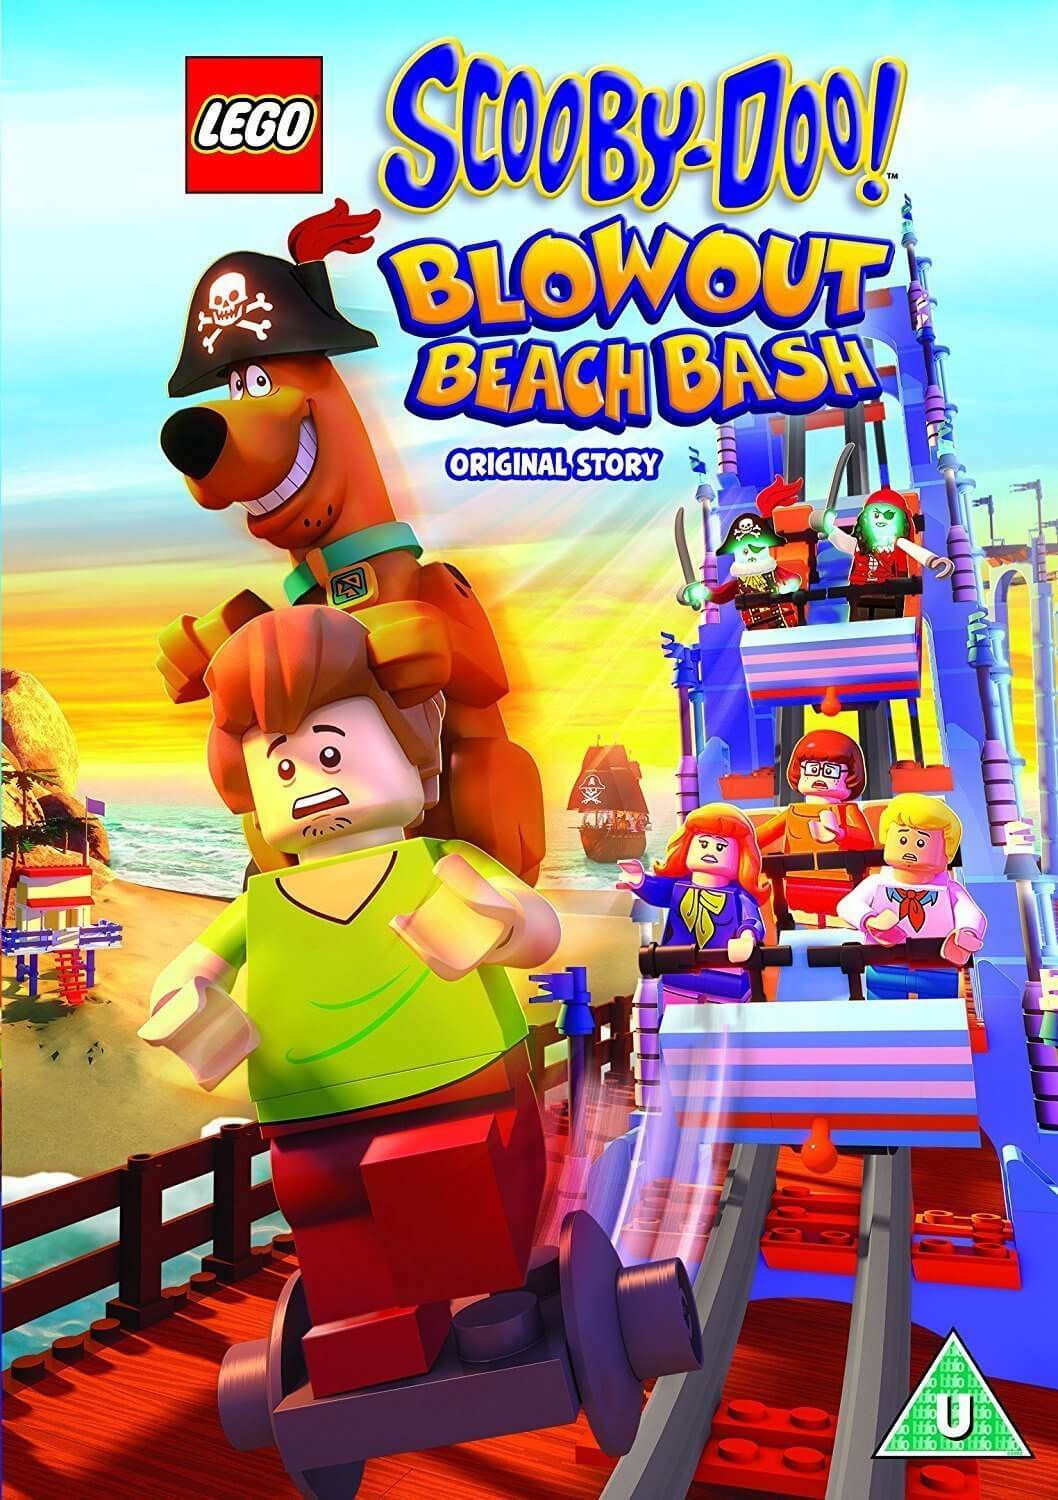 Lego Scooby-Doo! Blowout Beach Bash movie download